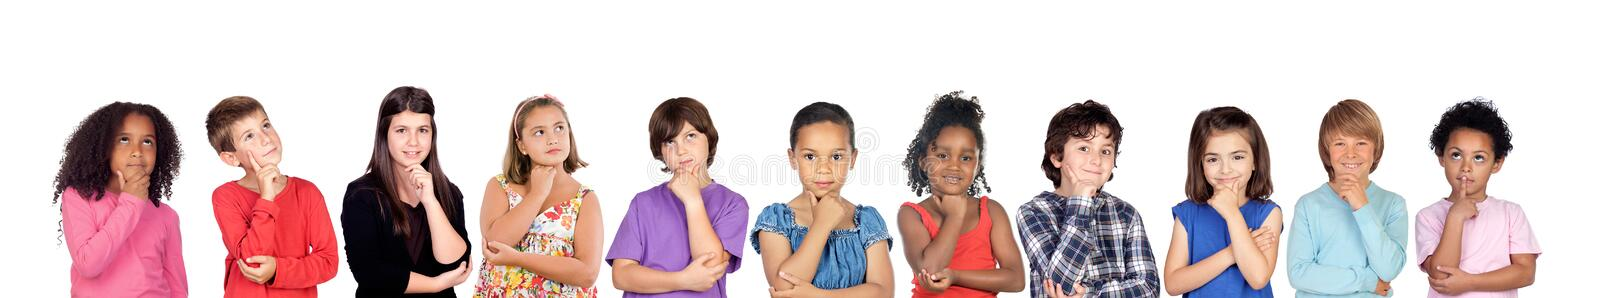 Many children thinking or imagine royalty free stock photography